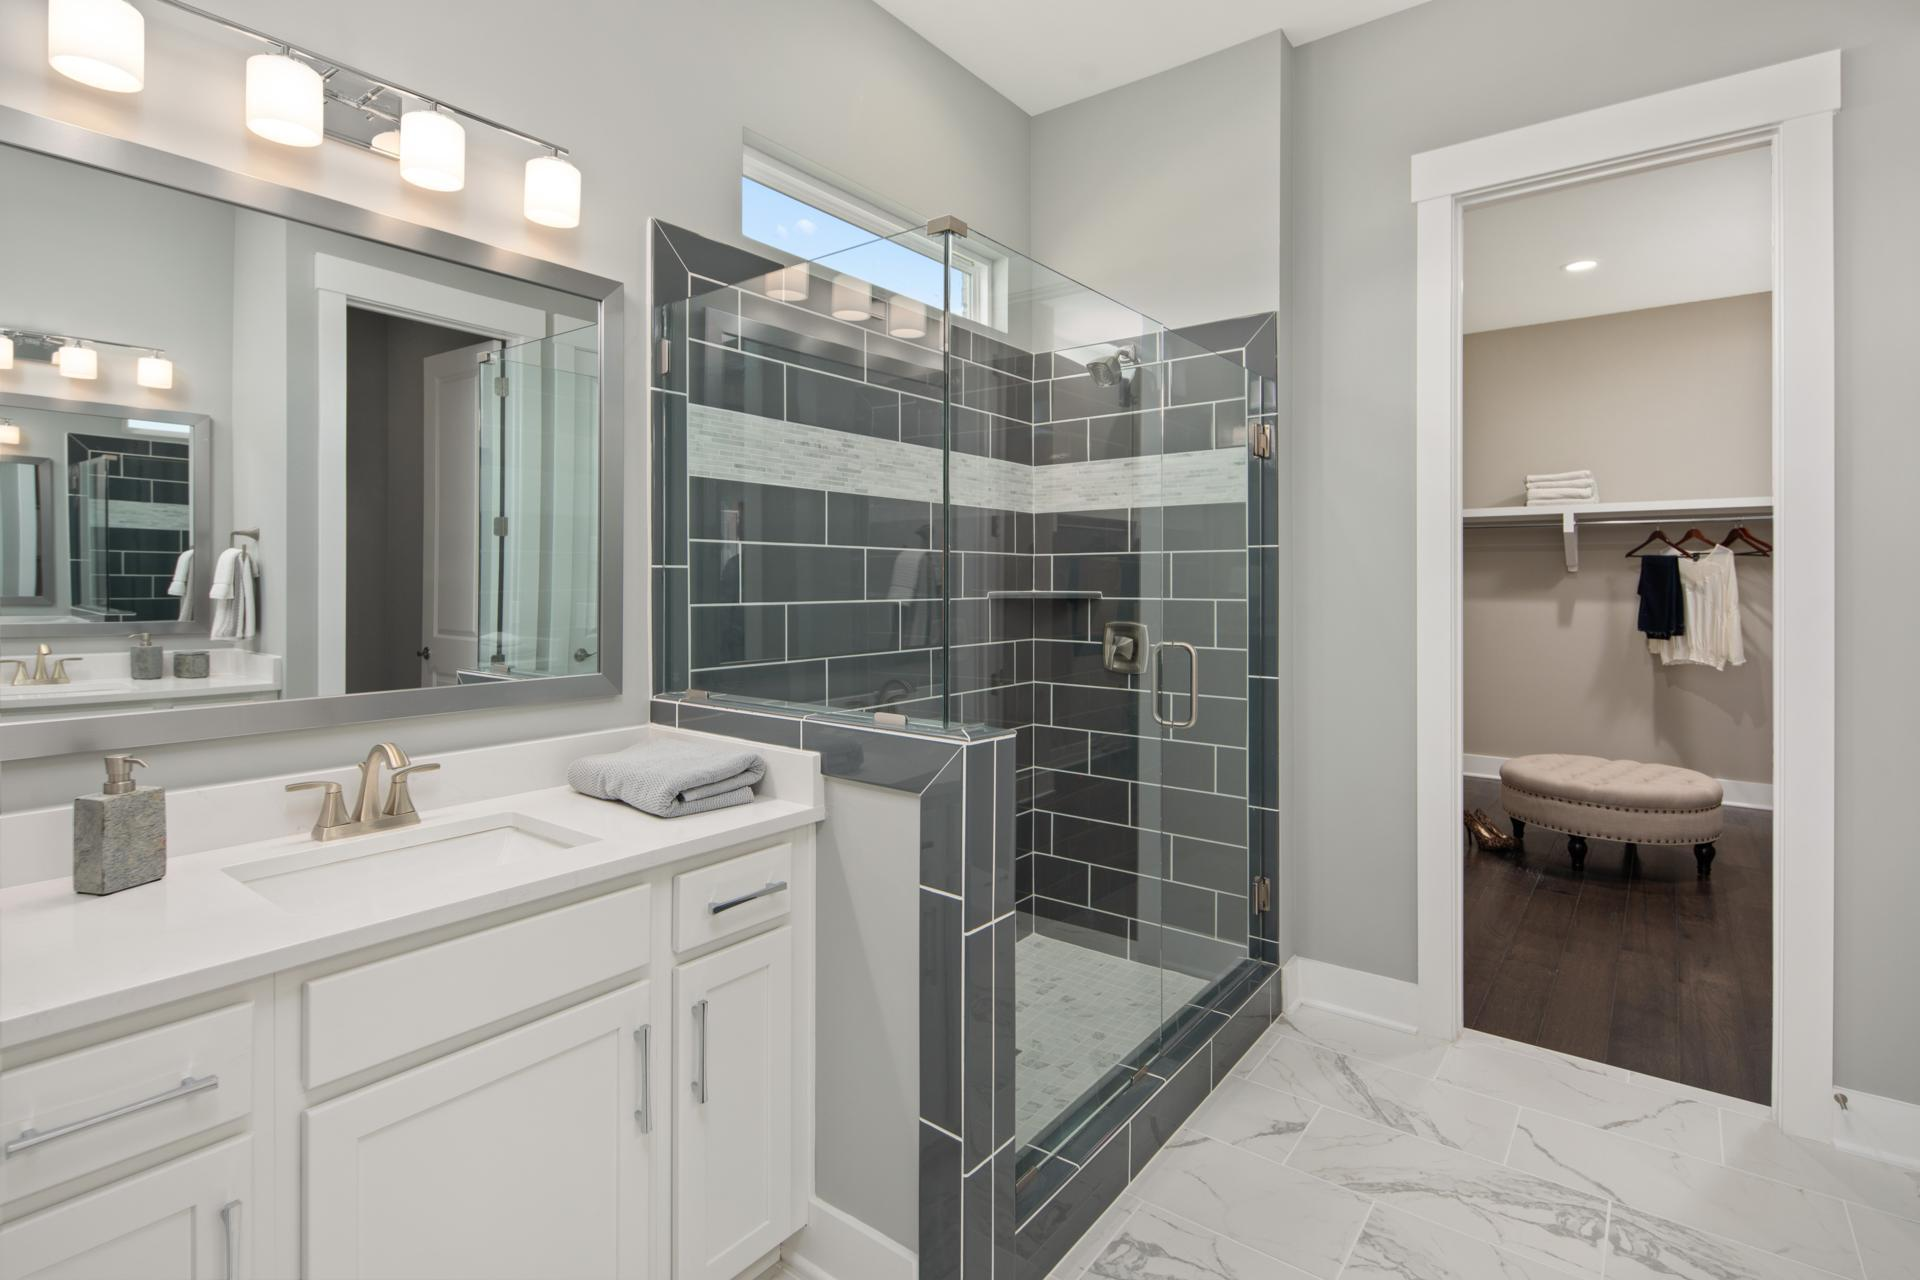 Bathroom featured in the Everly By Drees Homes in Nashville, TN